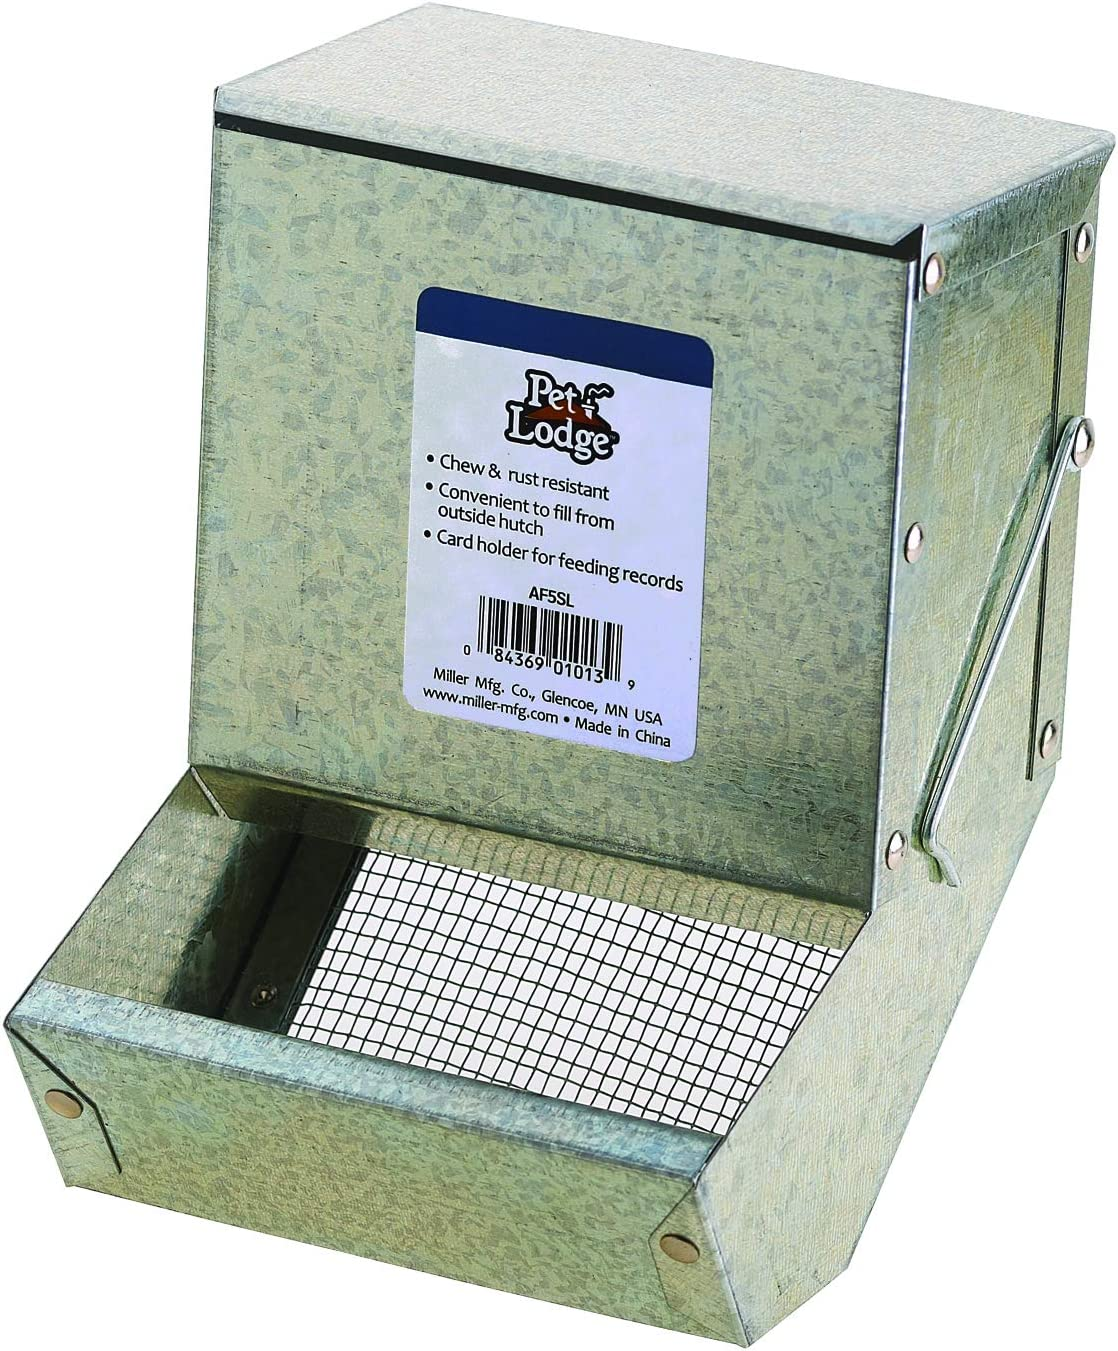 Pet Lodge Steel Small Animal Feeder with Lid and Sifter Bottom Small Animal Feed Box, Hold Several Days Worth of Feed, Great for Rabbits, Ferrets and Other Small Animals (5 Inch) (Item No. AF5SL)